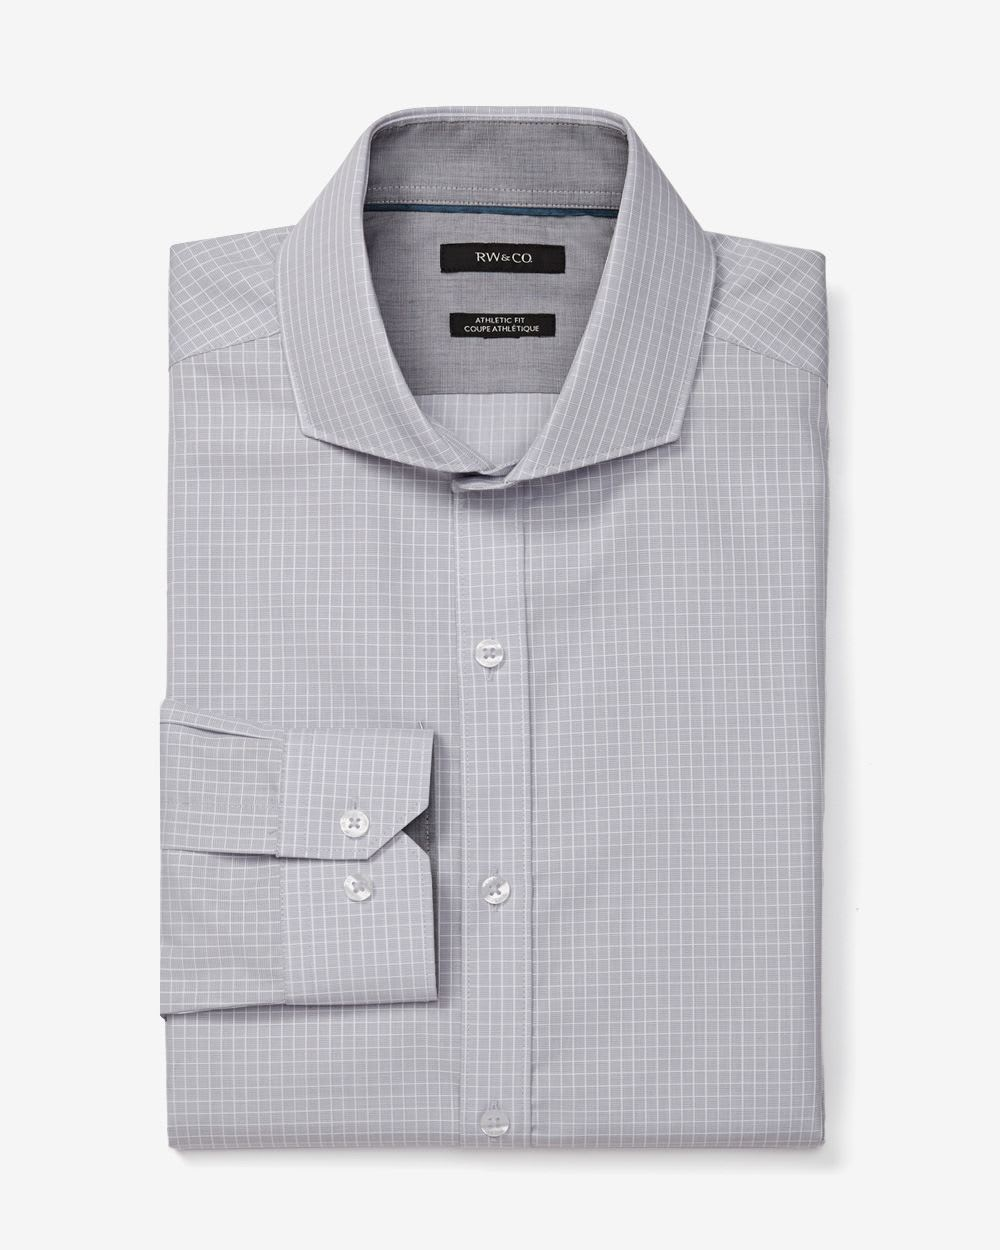 Athletic fit window pane dress shirt rw co for Best athletic dress shirts